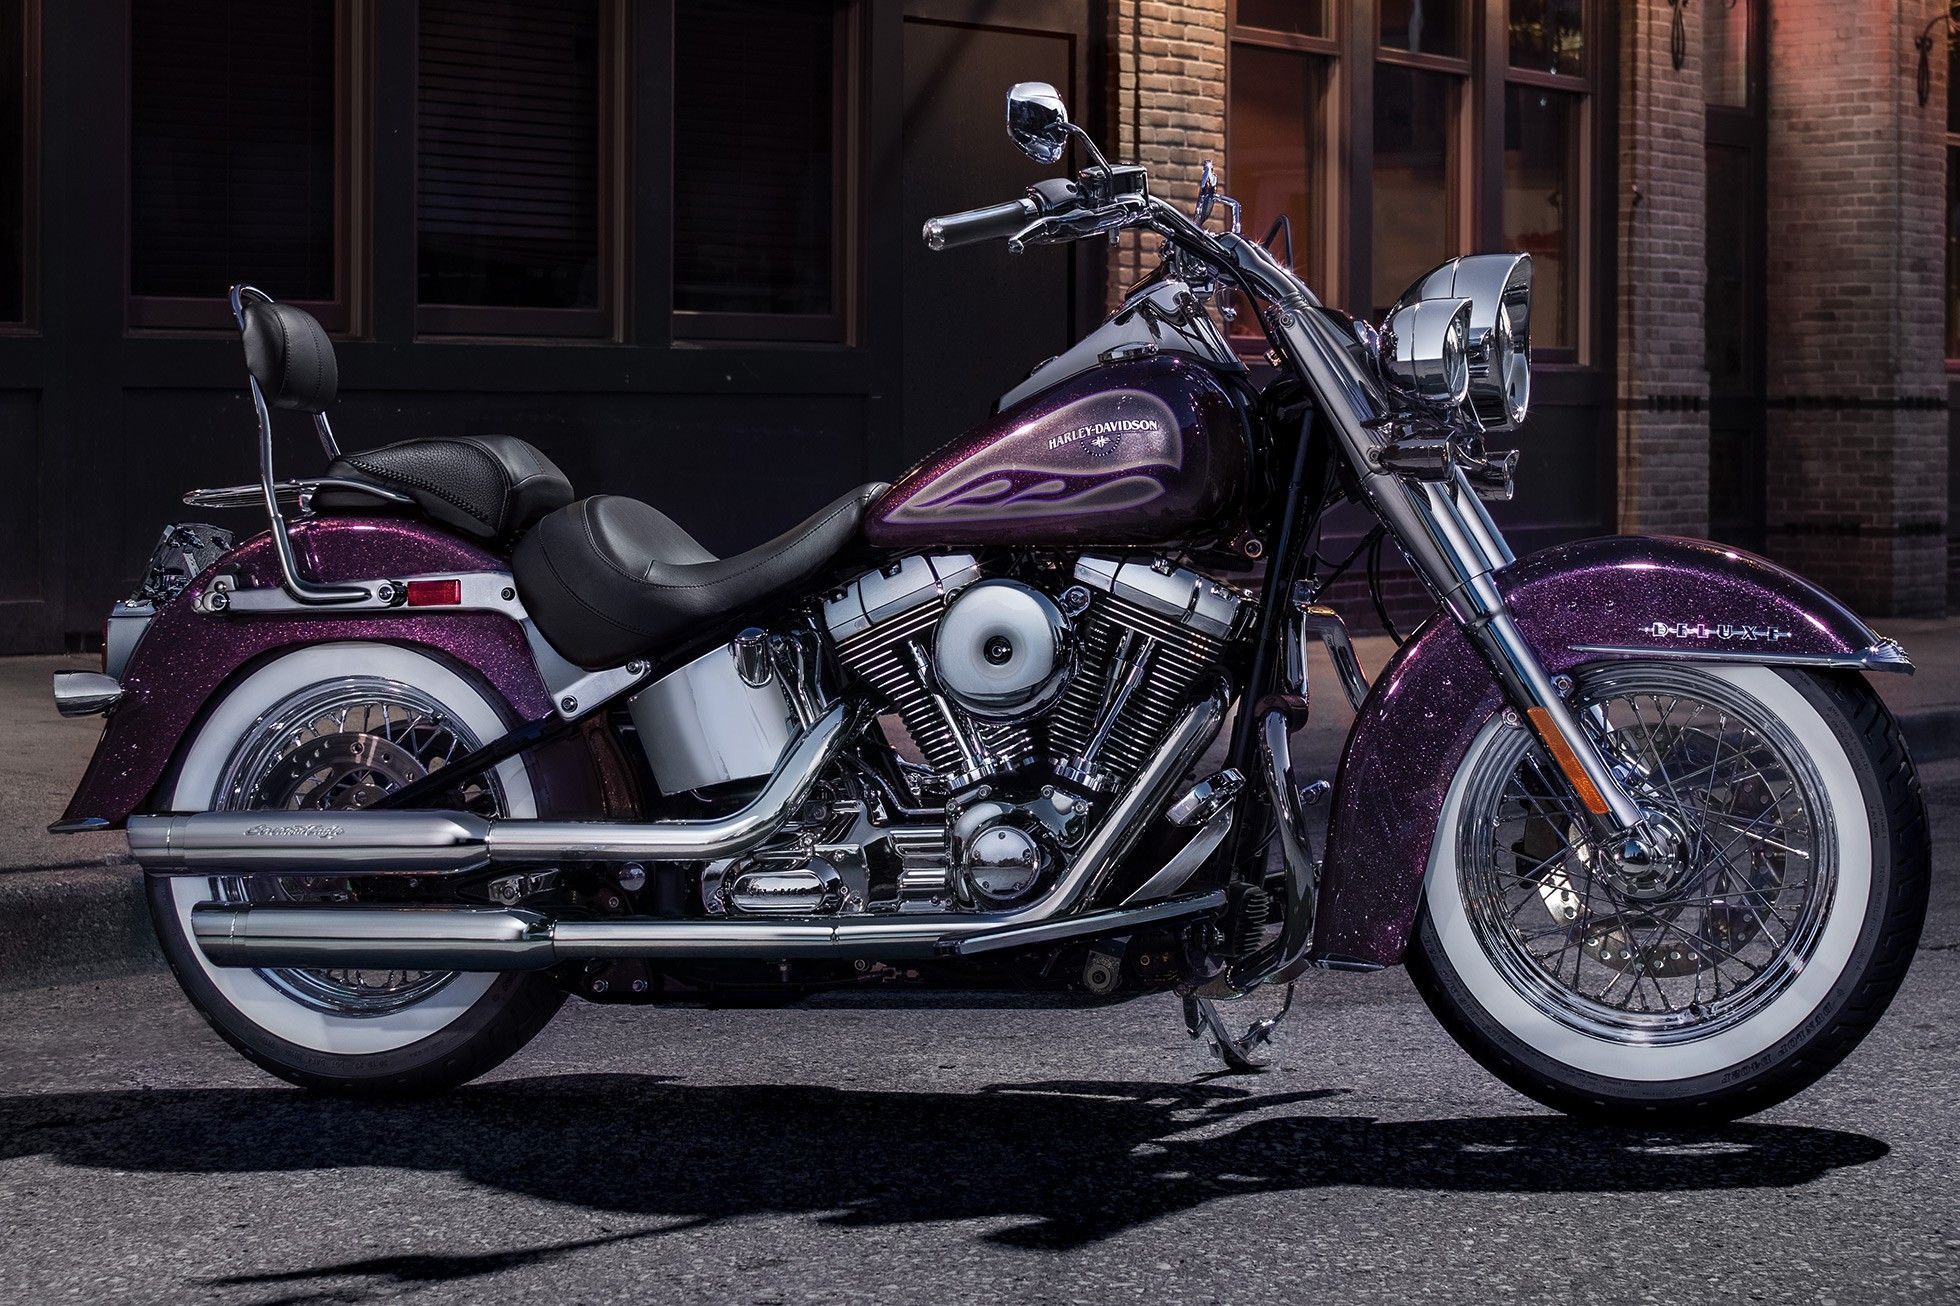 2017 Harley-Davidson Softail® Deluxe in Waterford, Michigan | Harley